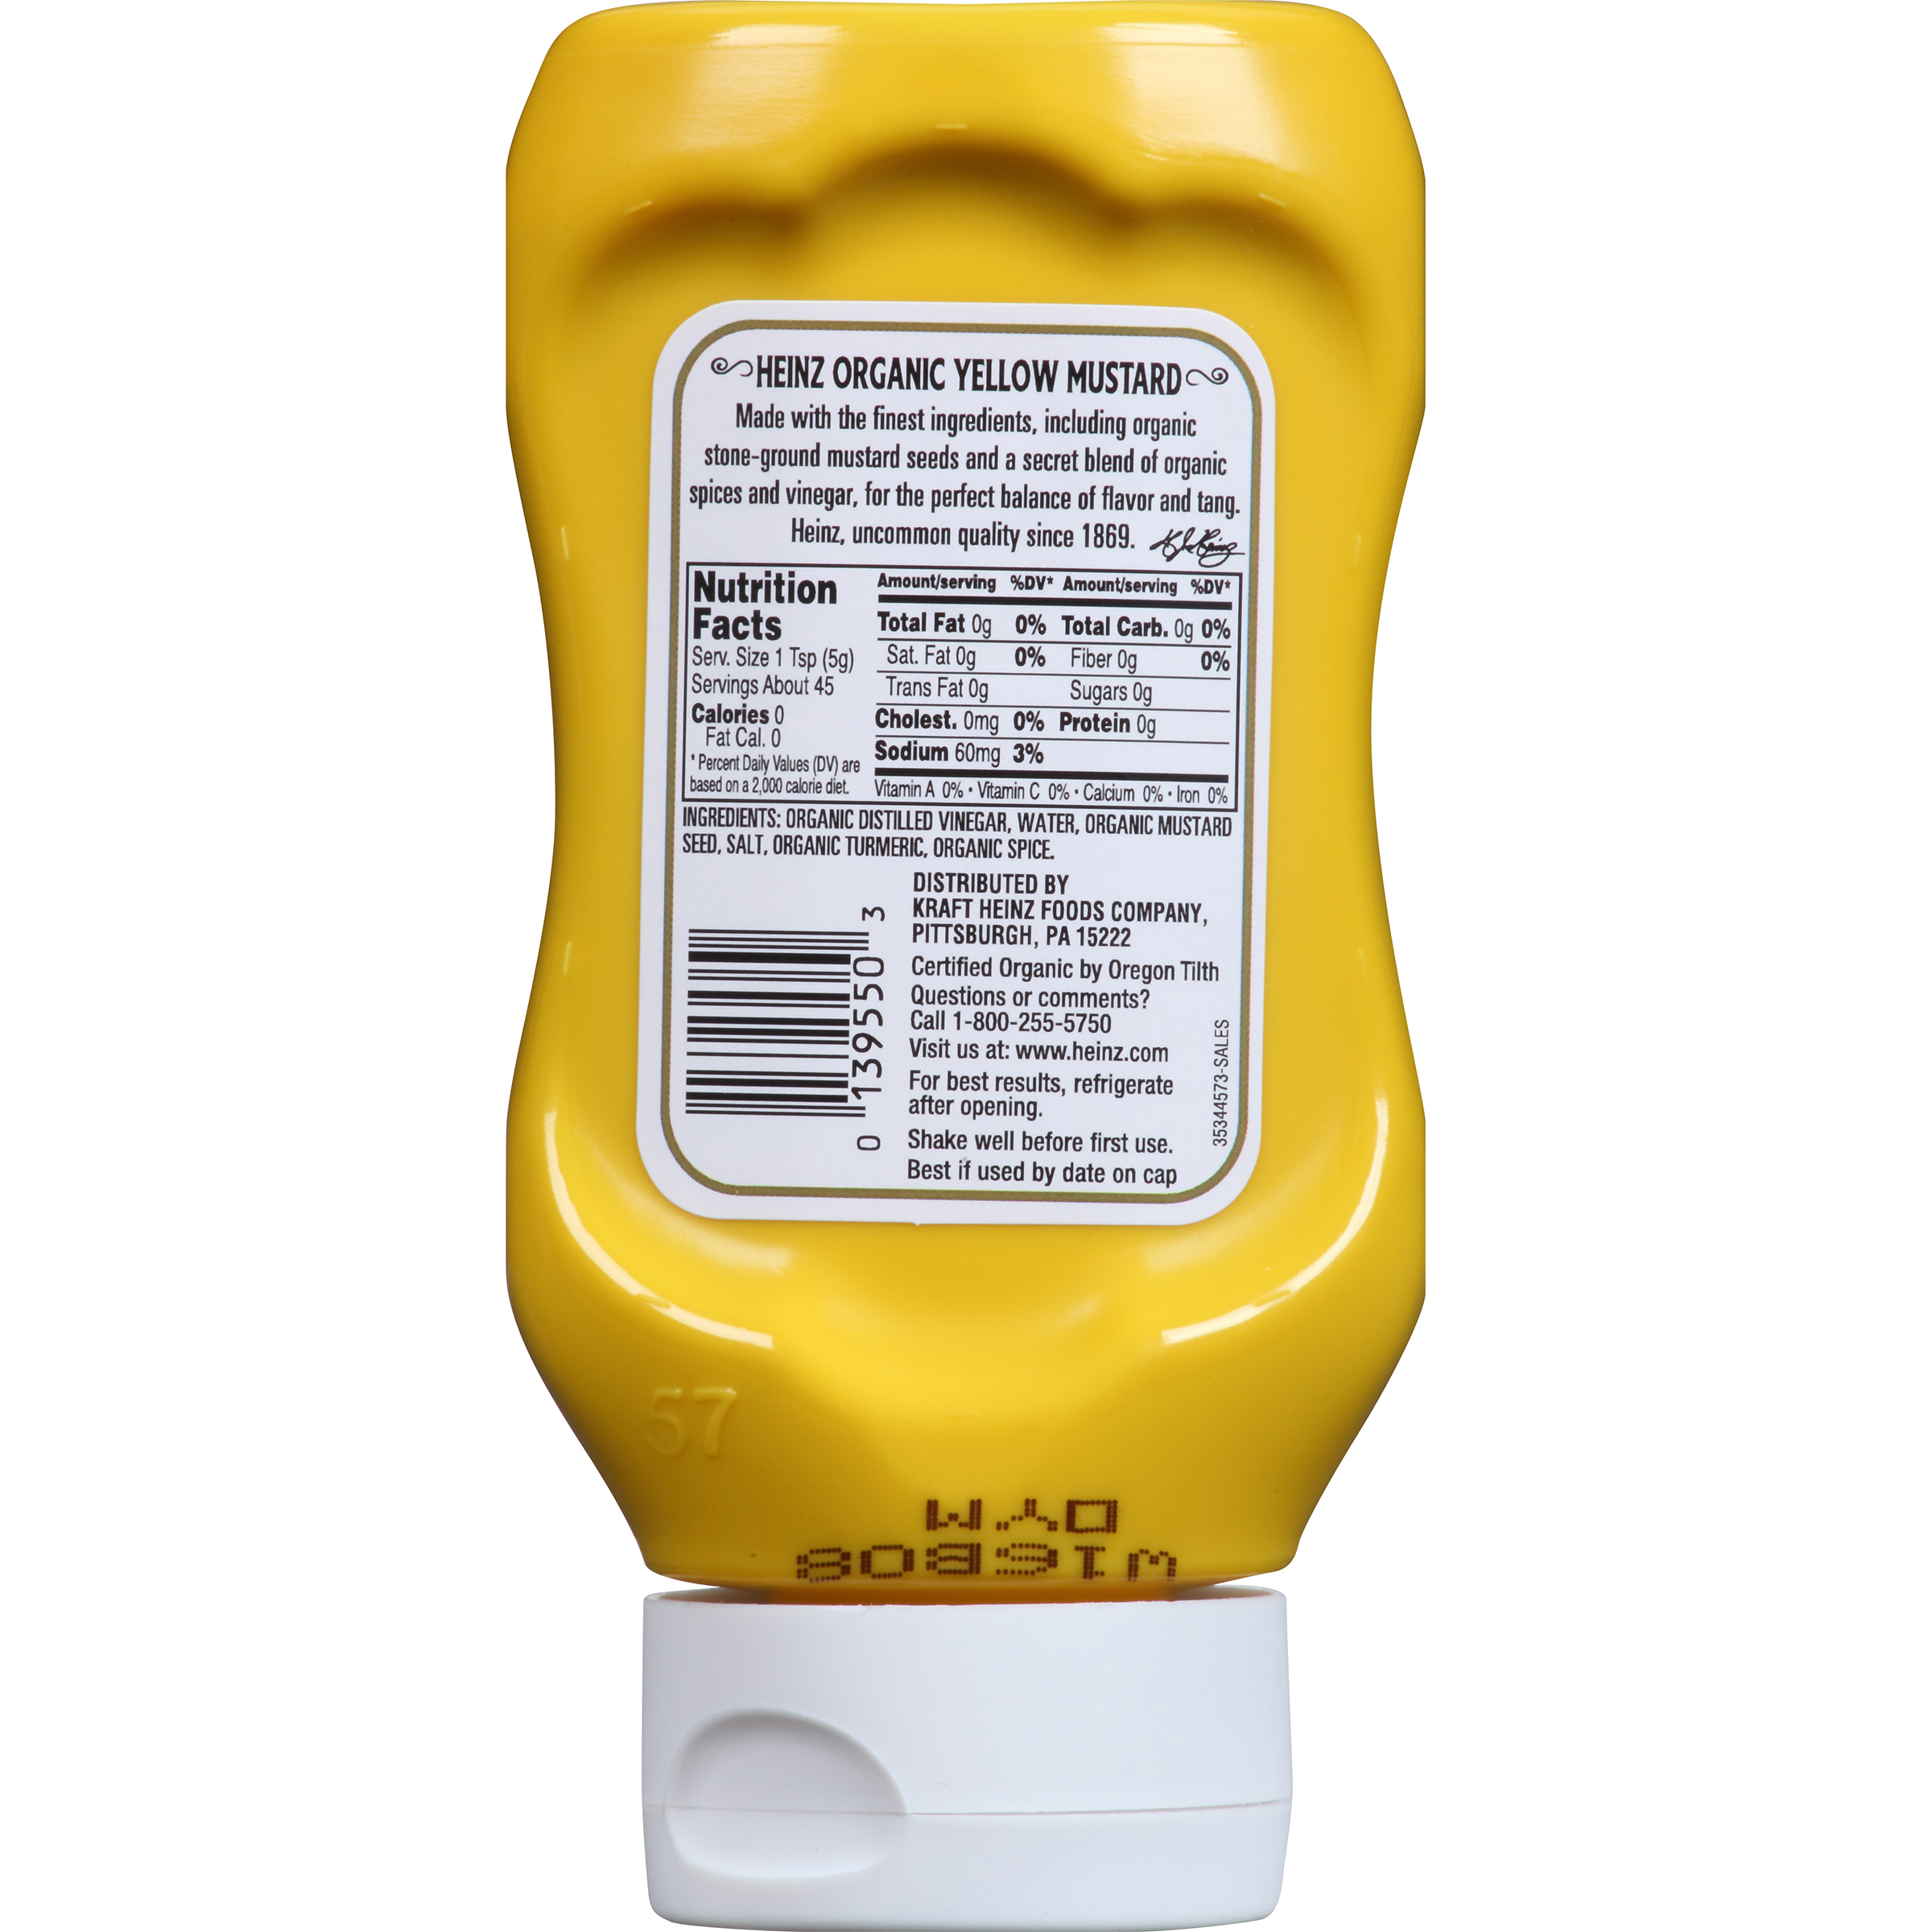 Heinz Organic Yellow Mustard 8 oz Bottle